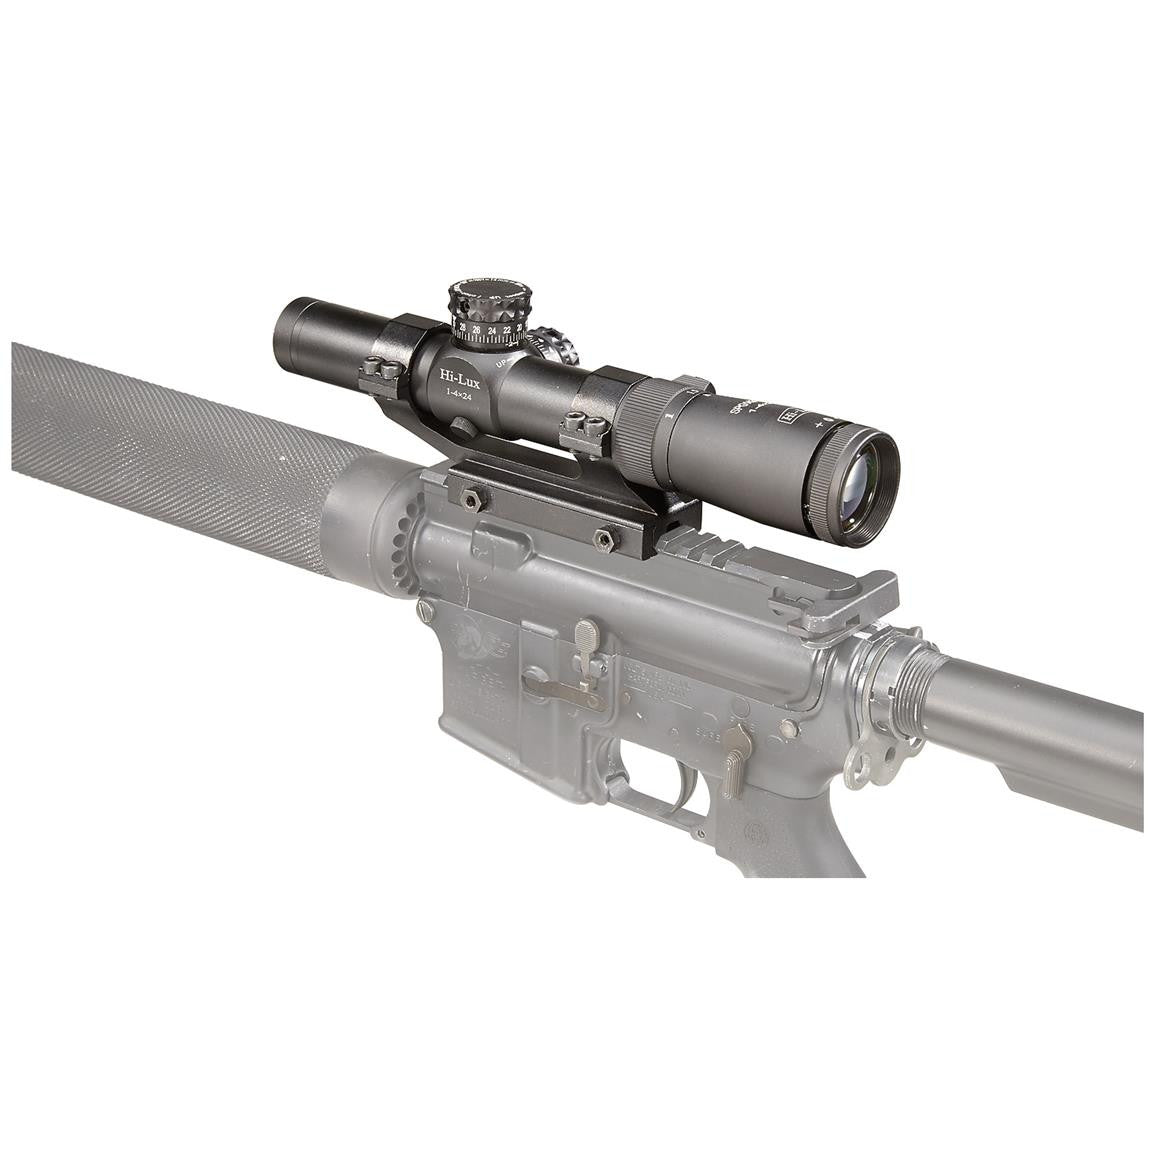 SPG14X24 rear mounted scope